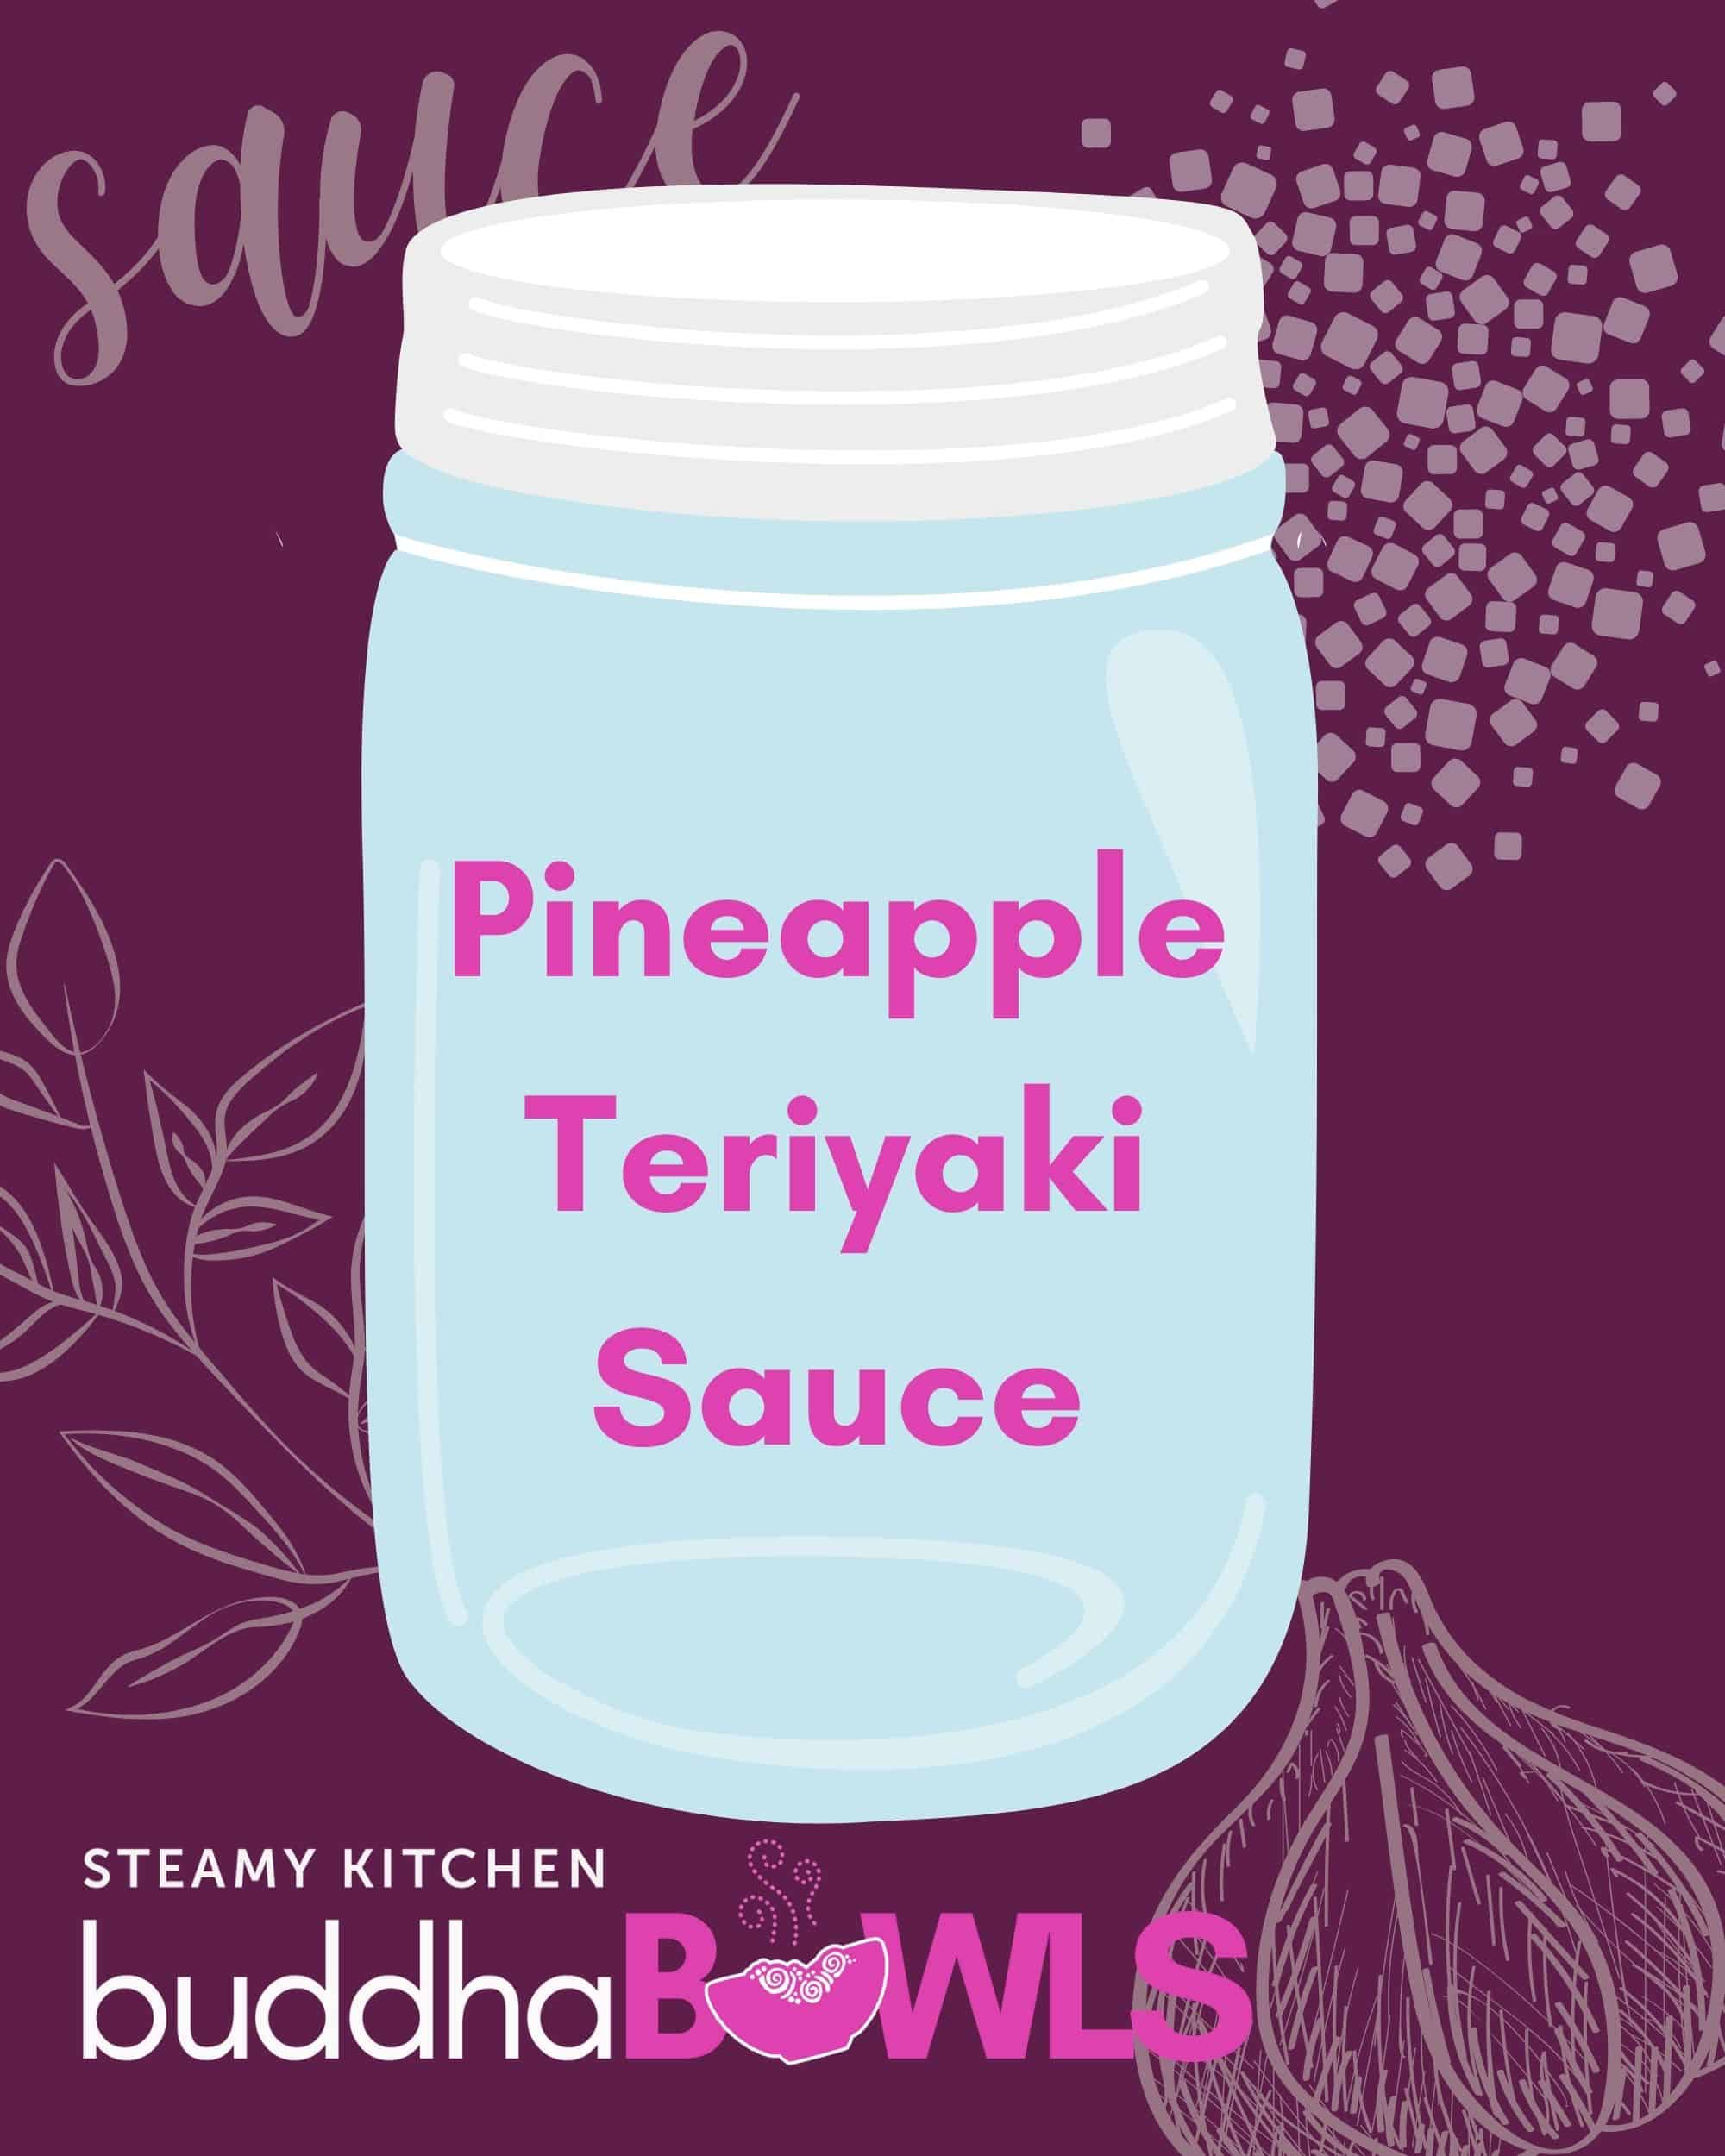 Pineapple Teriyaki Sauce Recipe